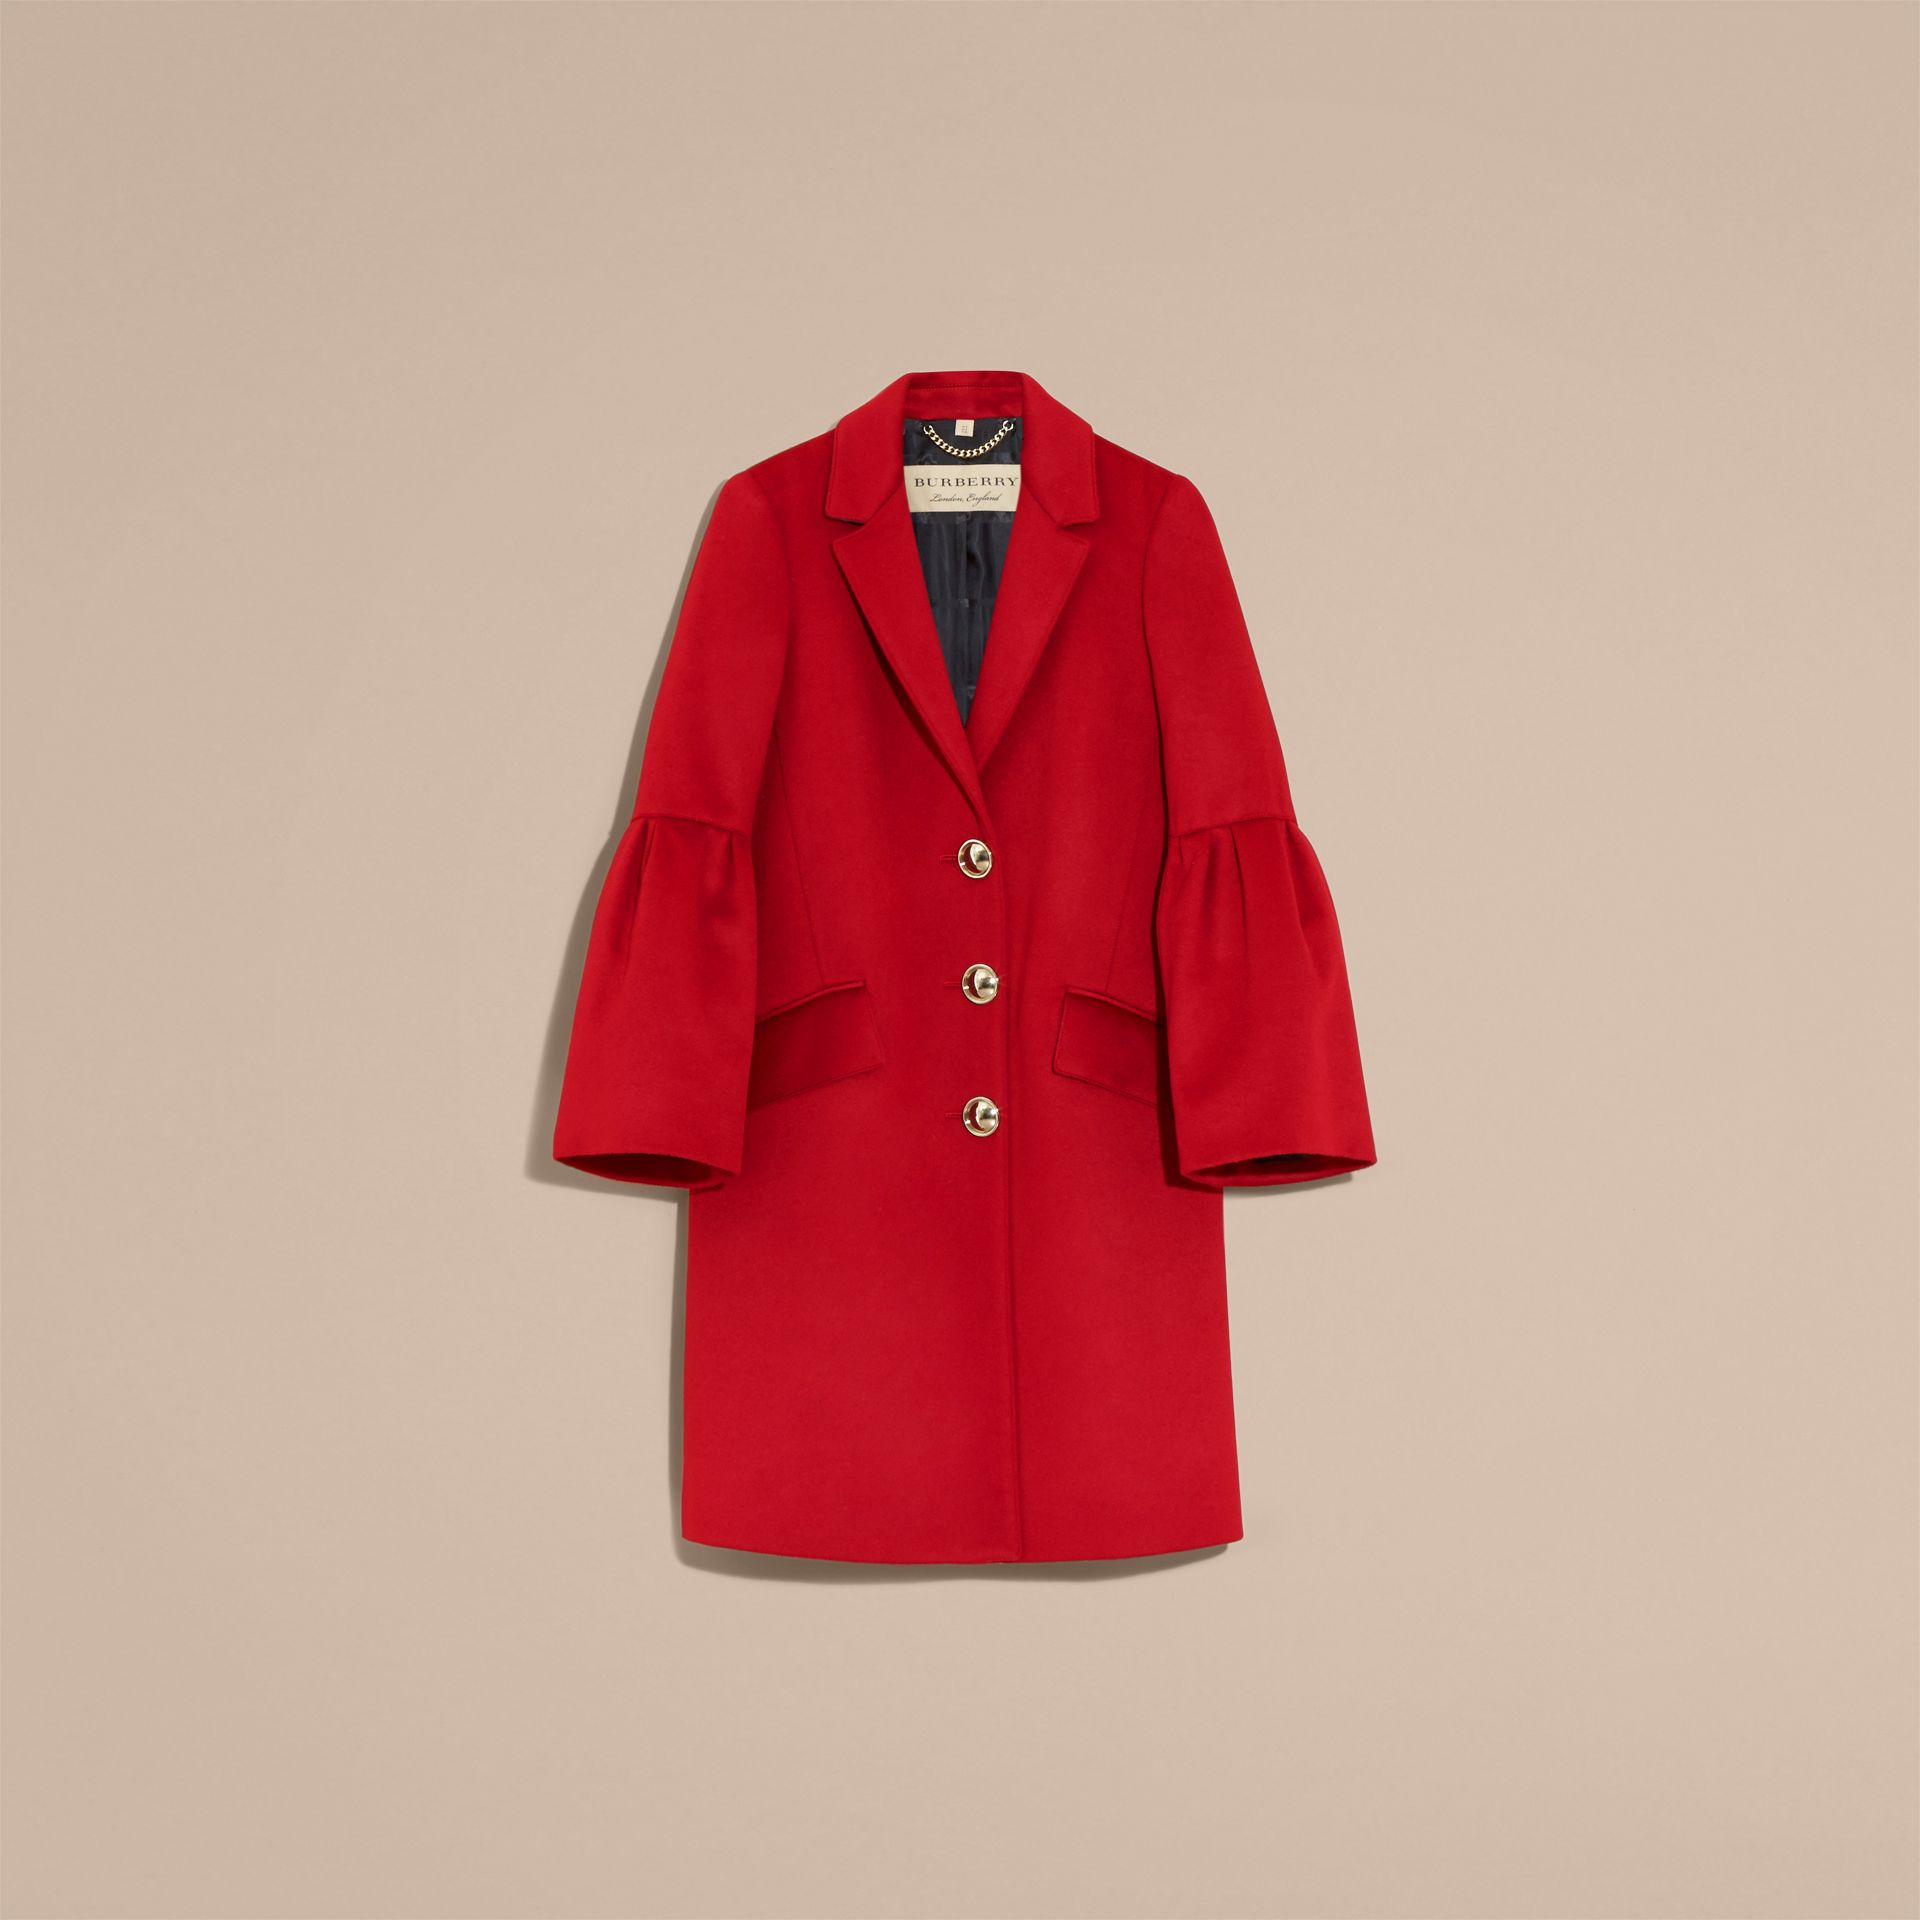 Parade red Tailored Wool Cashmere Coat with Bell Sleeves Parade - gallery image 4